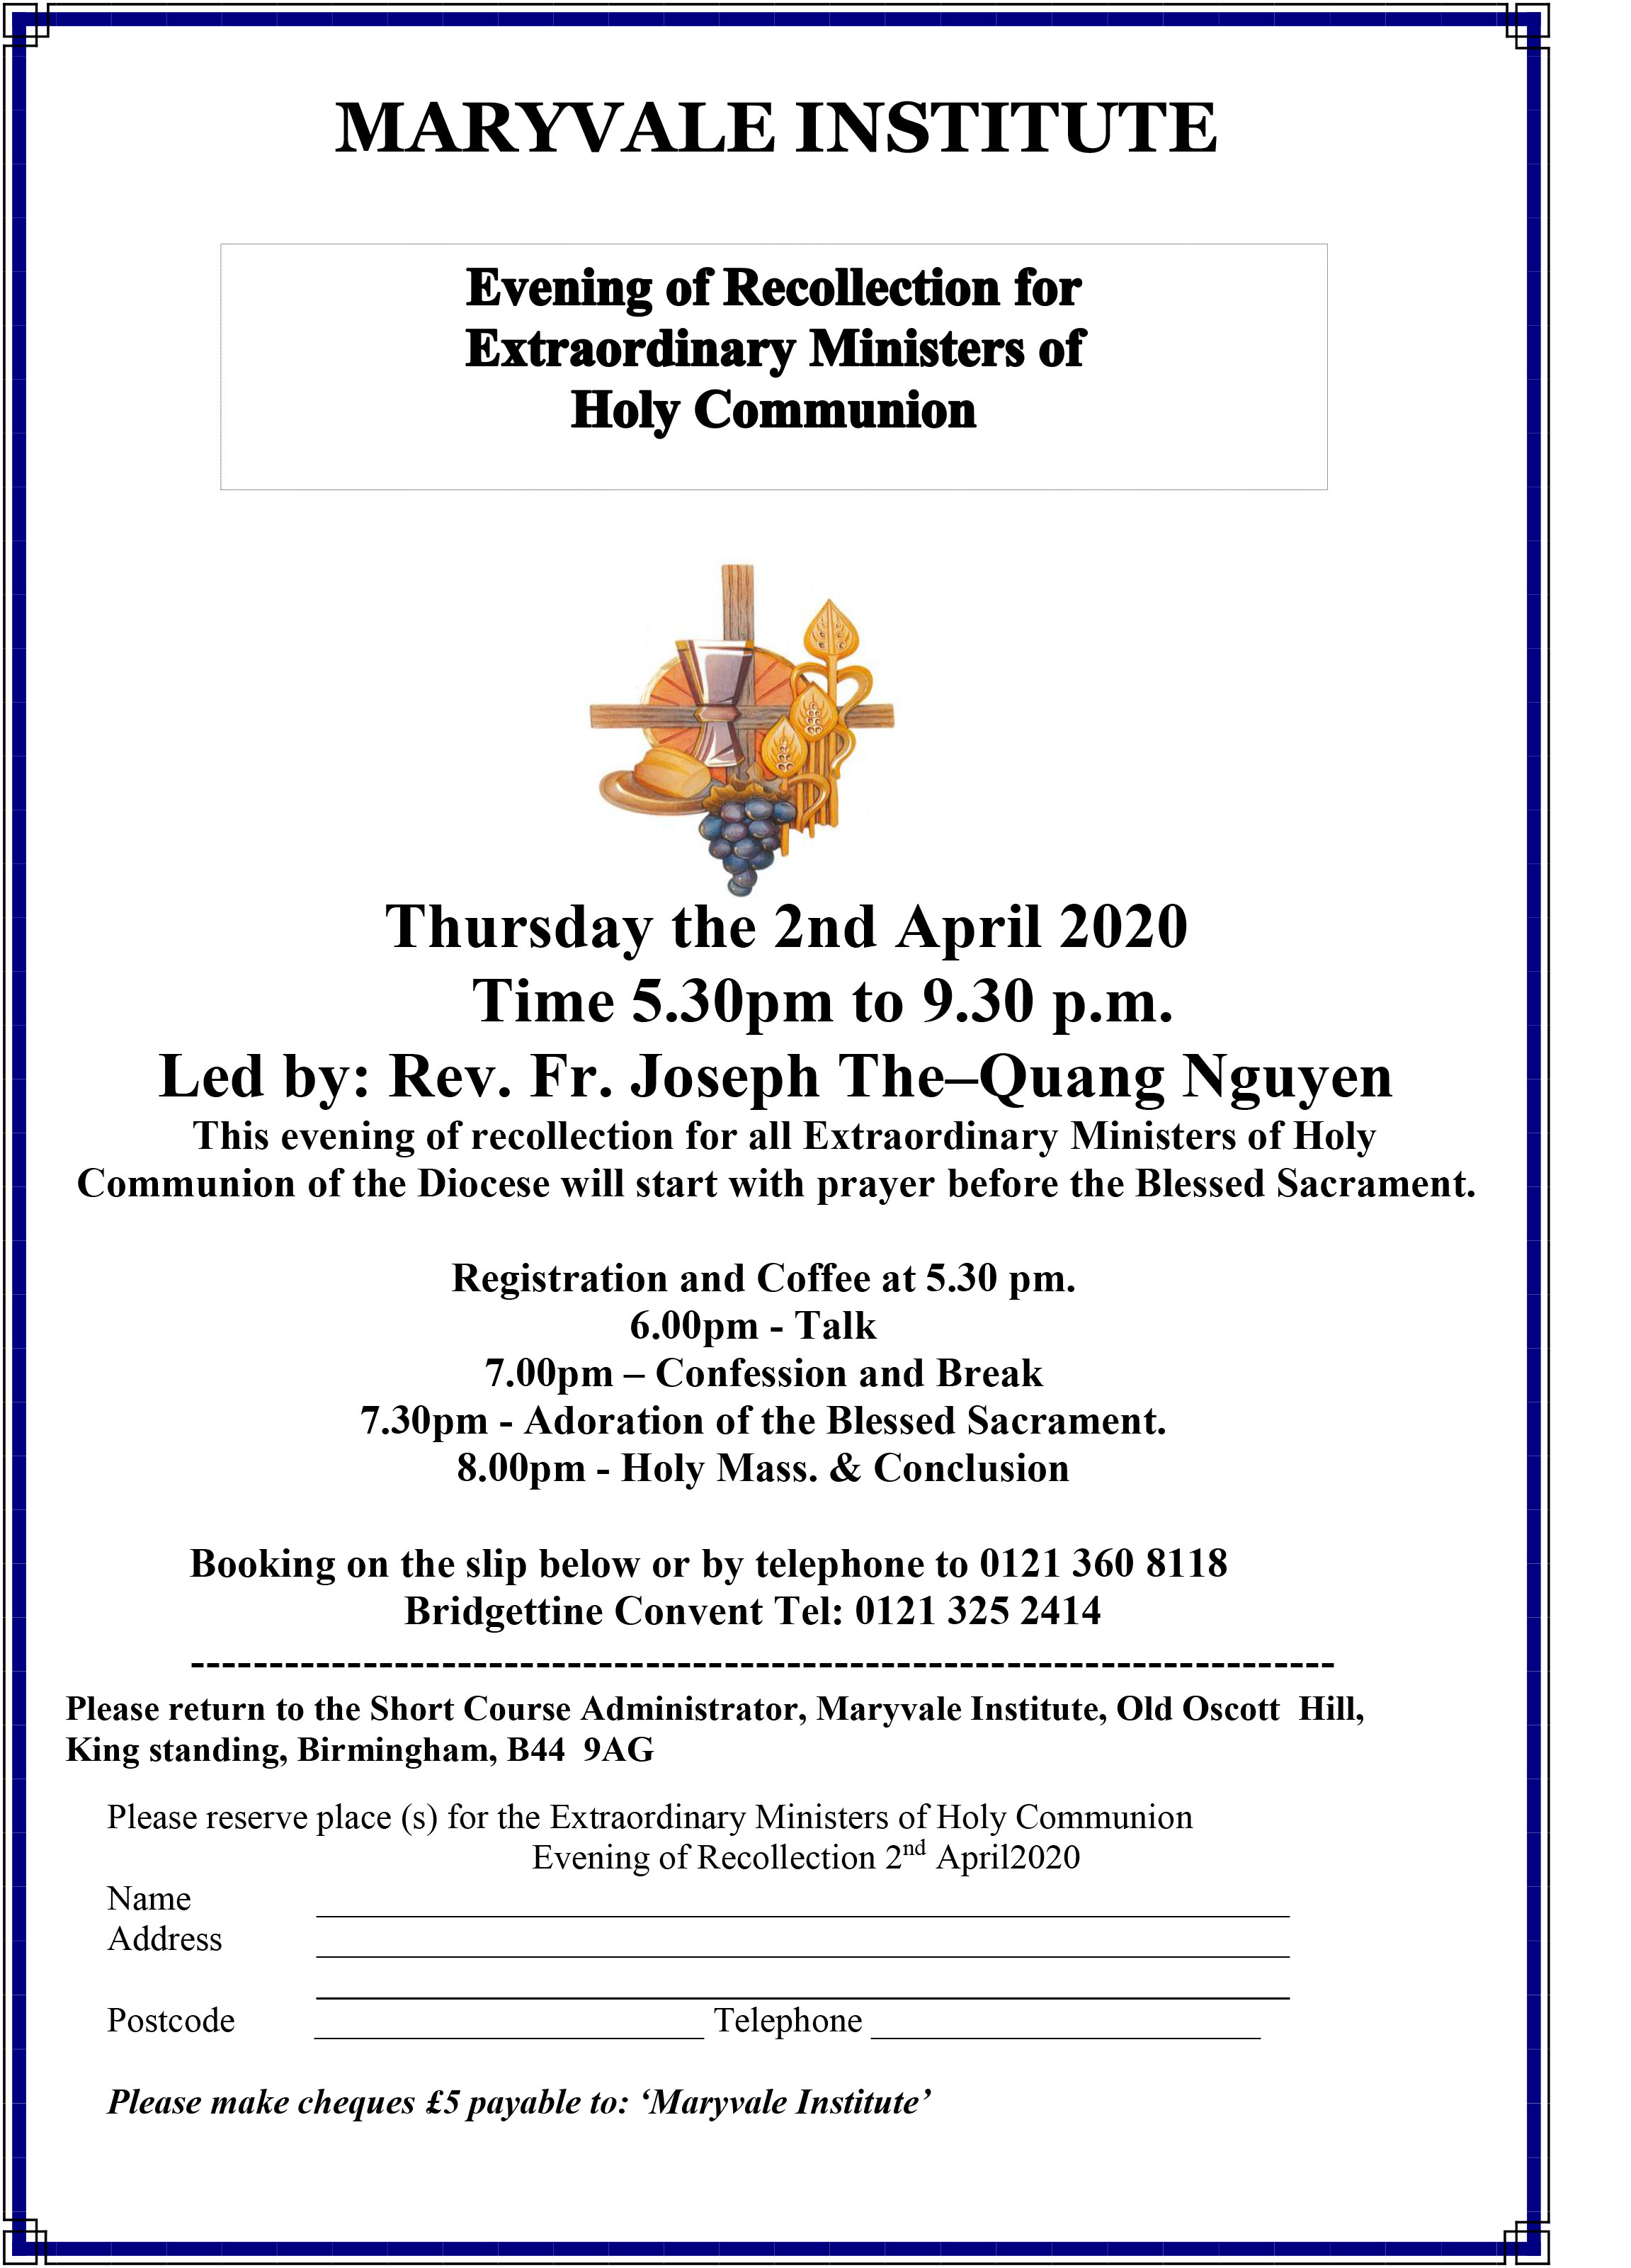 Evening of Recollection 2020 Flyer